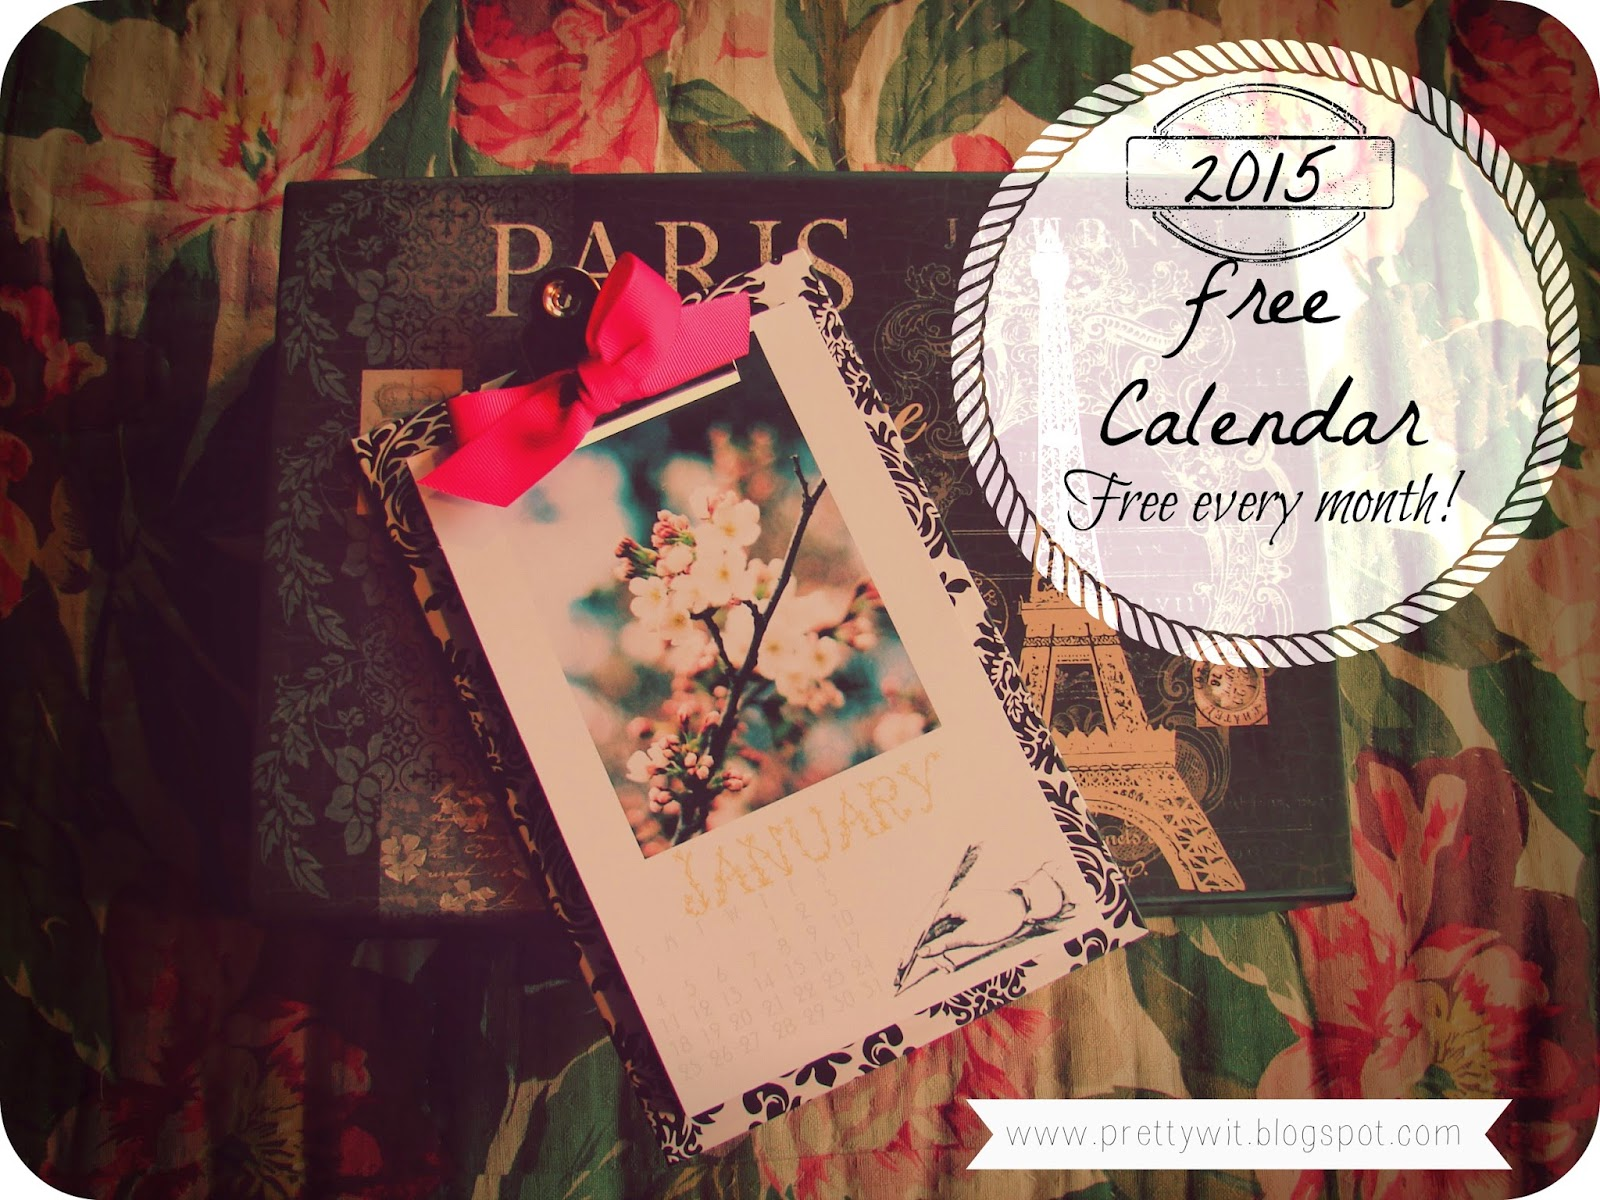 2015 Free Calendar by Pretty Wit